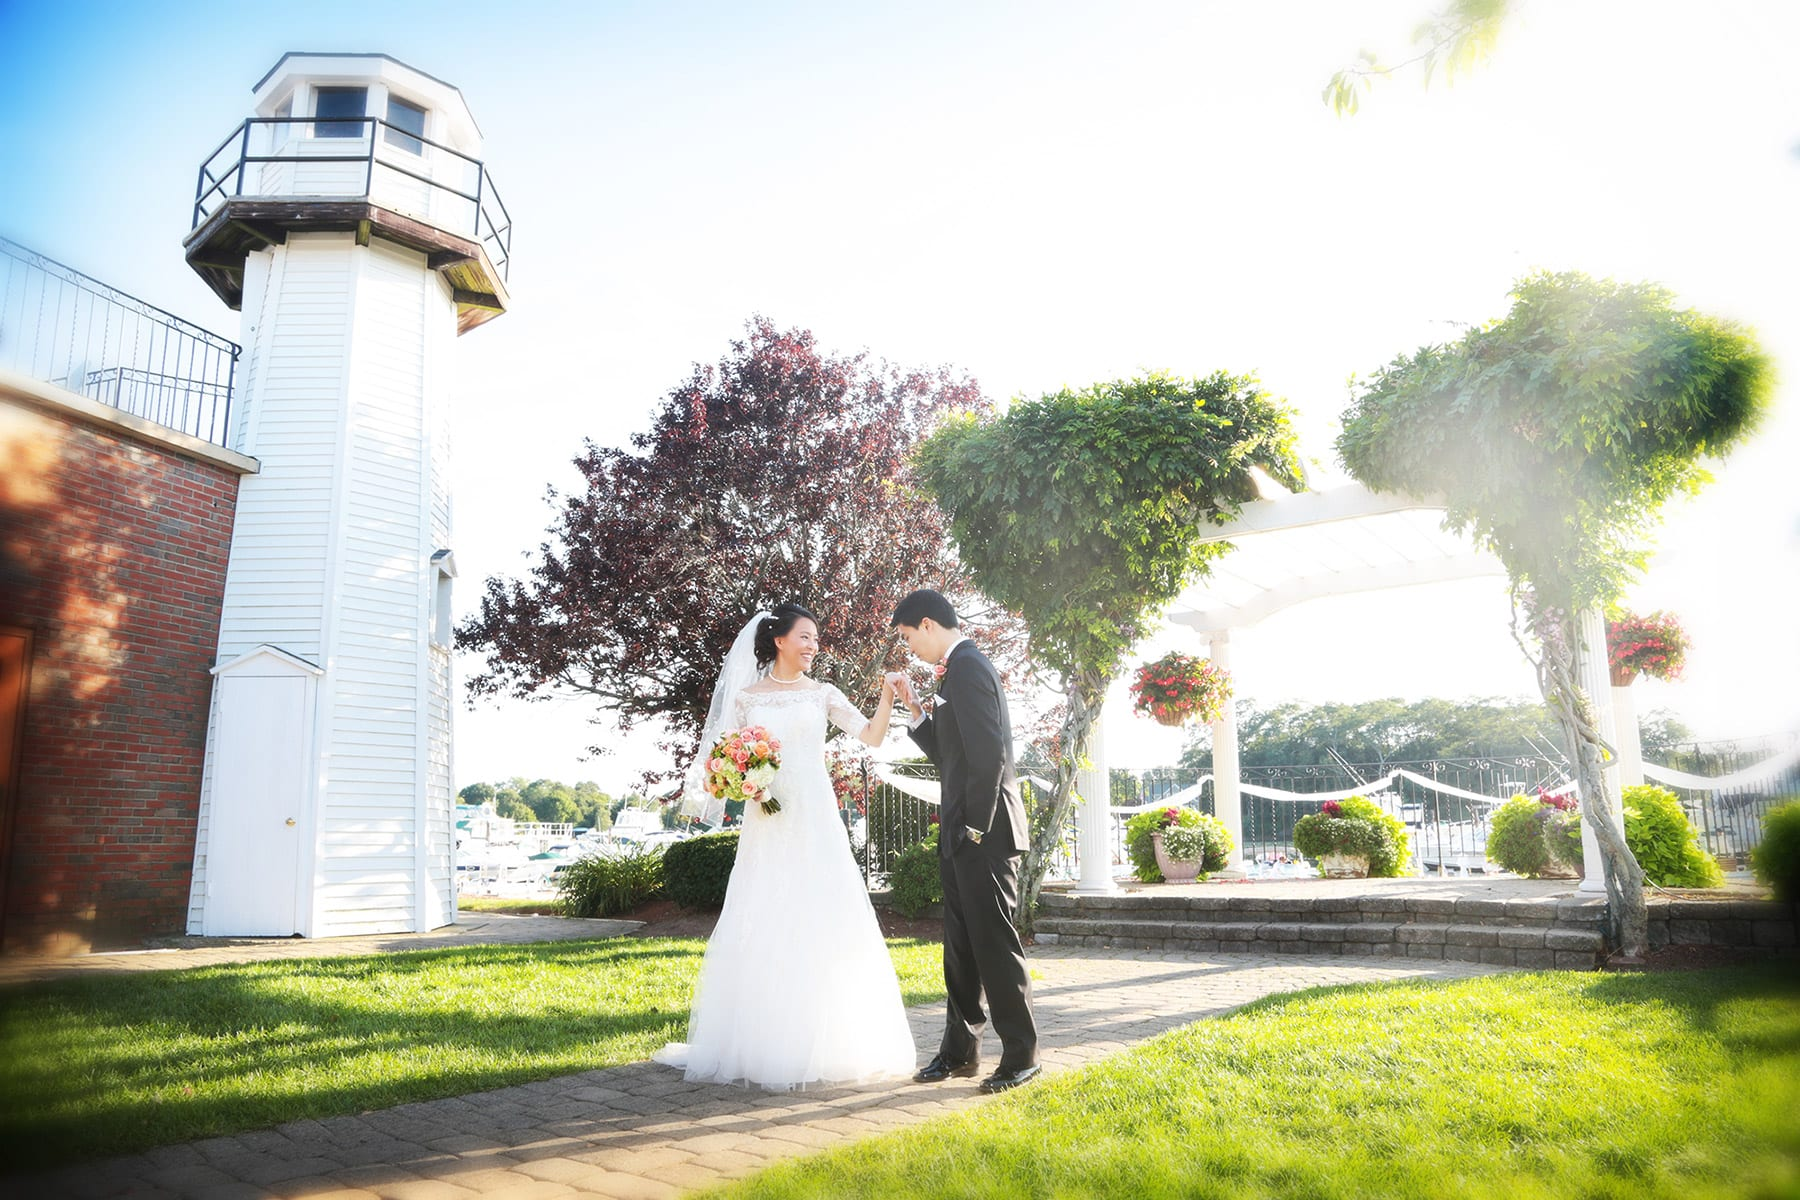 A bride and groom stand on the path leading to the Danversport Pergola